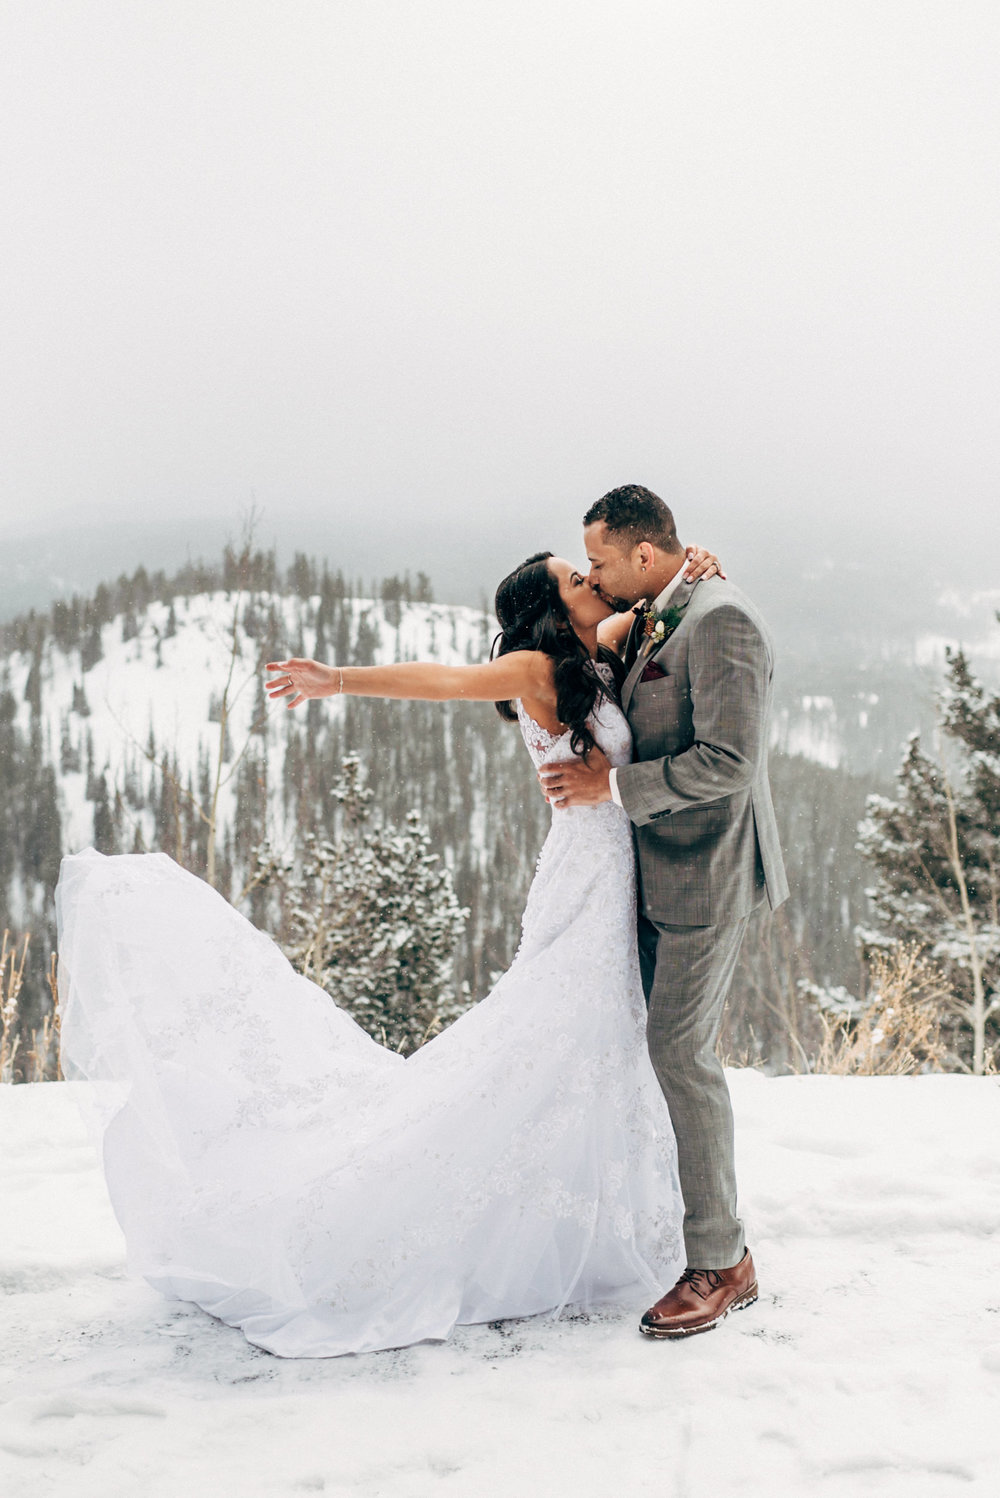 Dancing and celebrating in the snow at their Breckenridge wedding. Colorado Wedding Photographer.